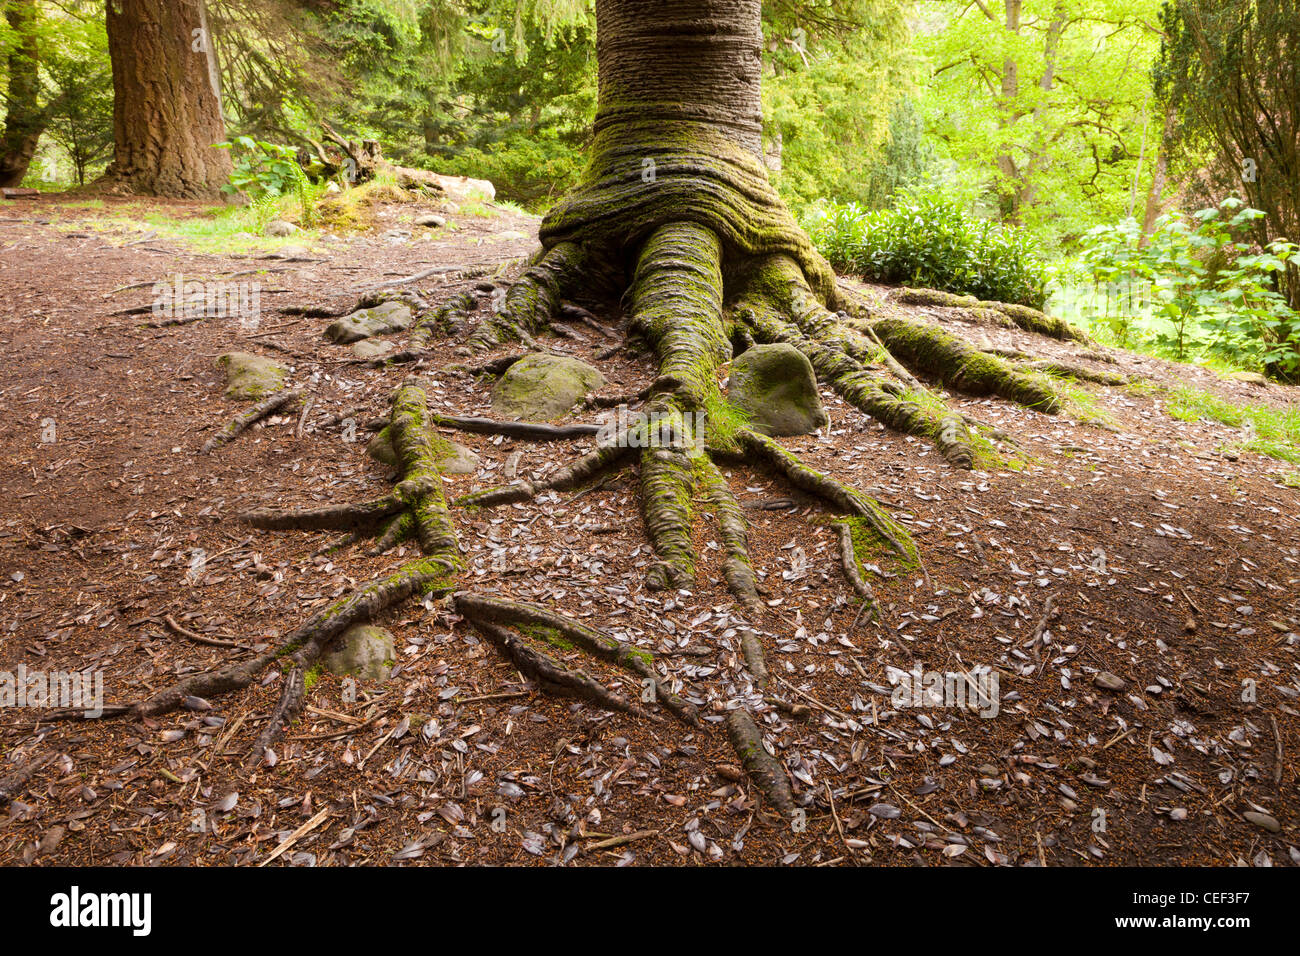 The trunk and roots of a Monkey Puzzle Tree Araucaria araucana growing near Aira Force, Cumbria, England. - Stock Image